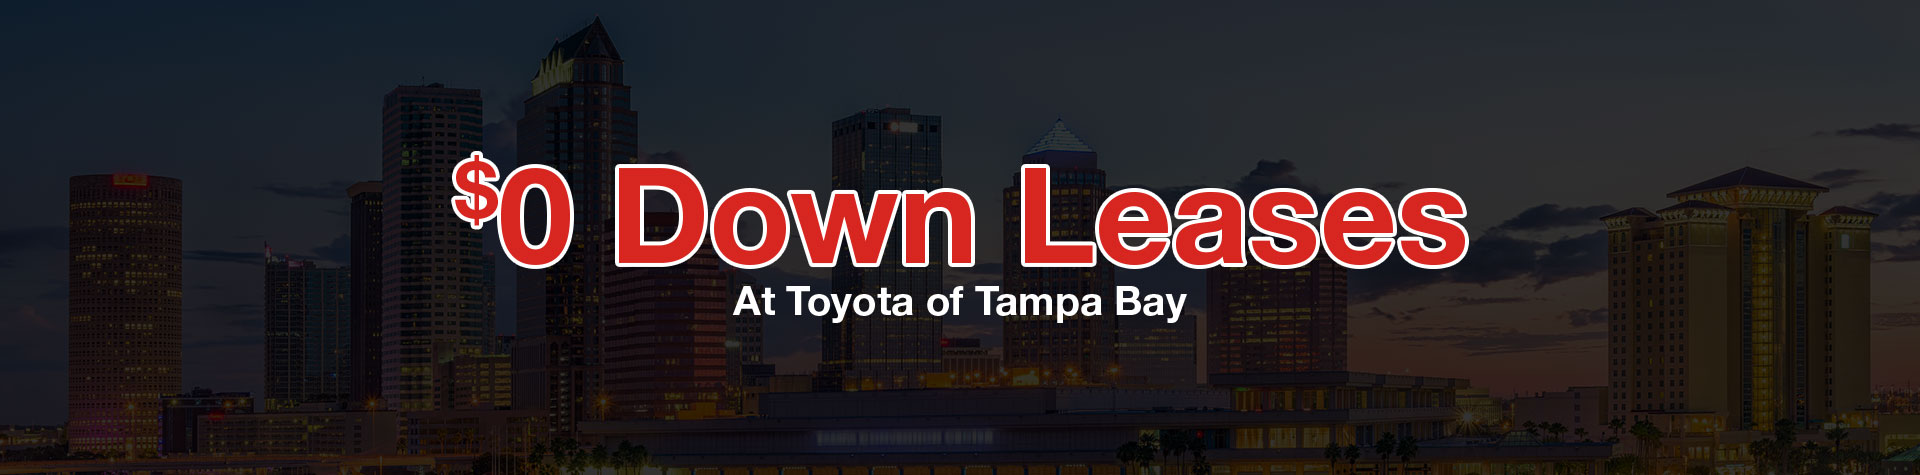 $0 Down Leases At Toyota of Tampa Bay